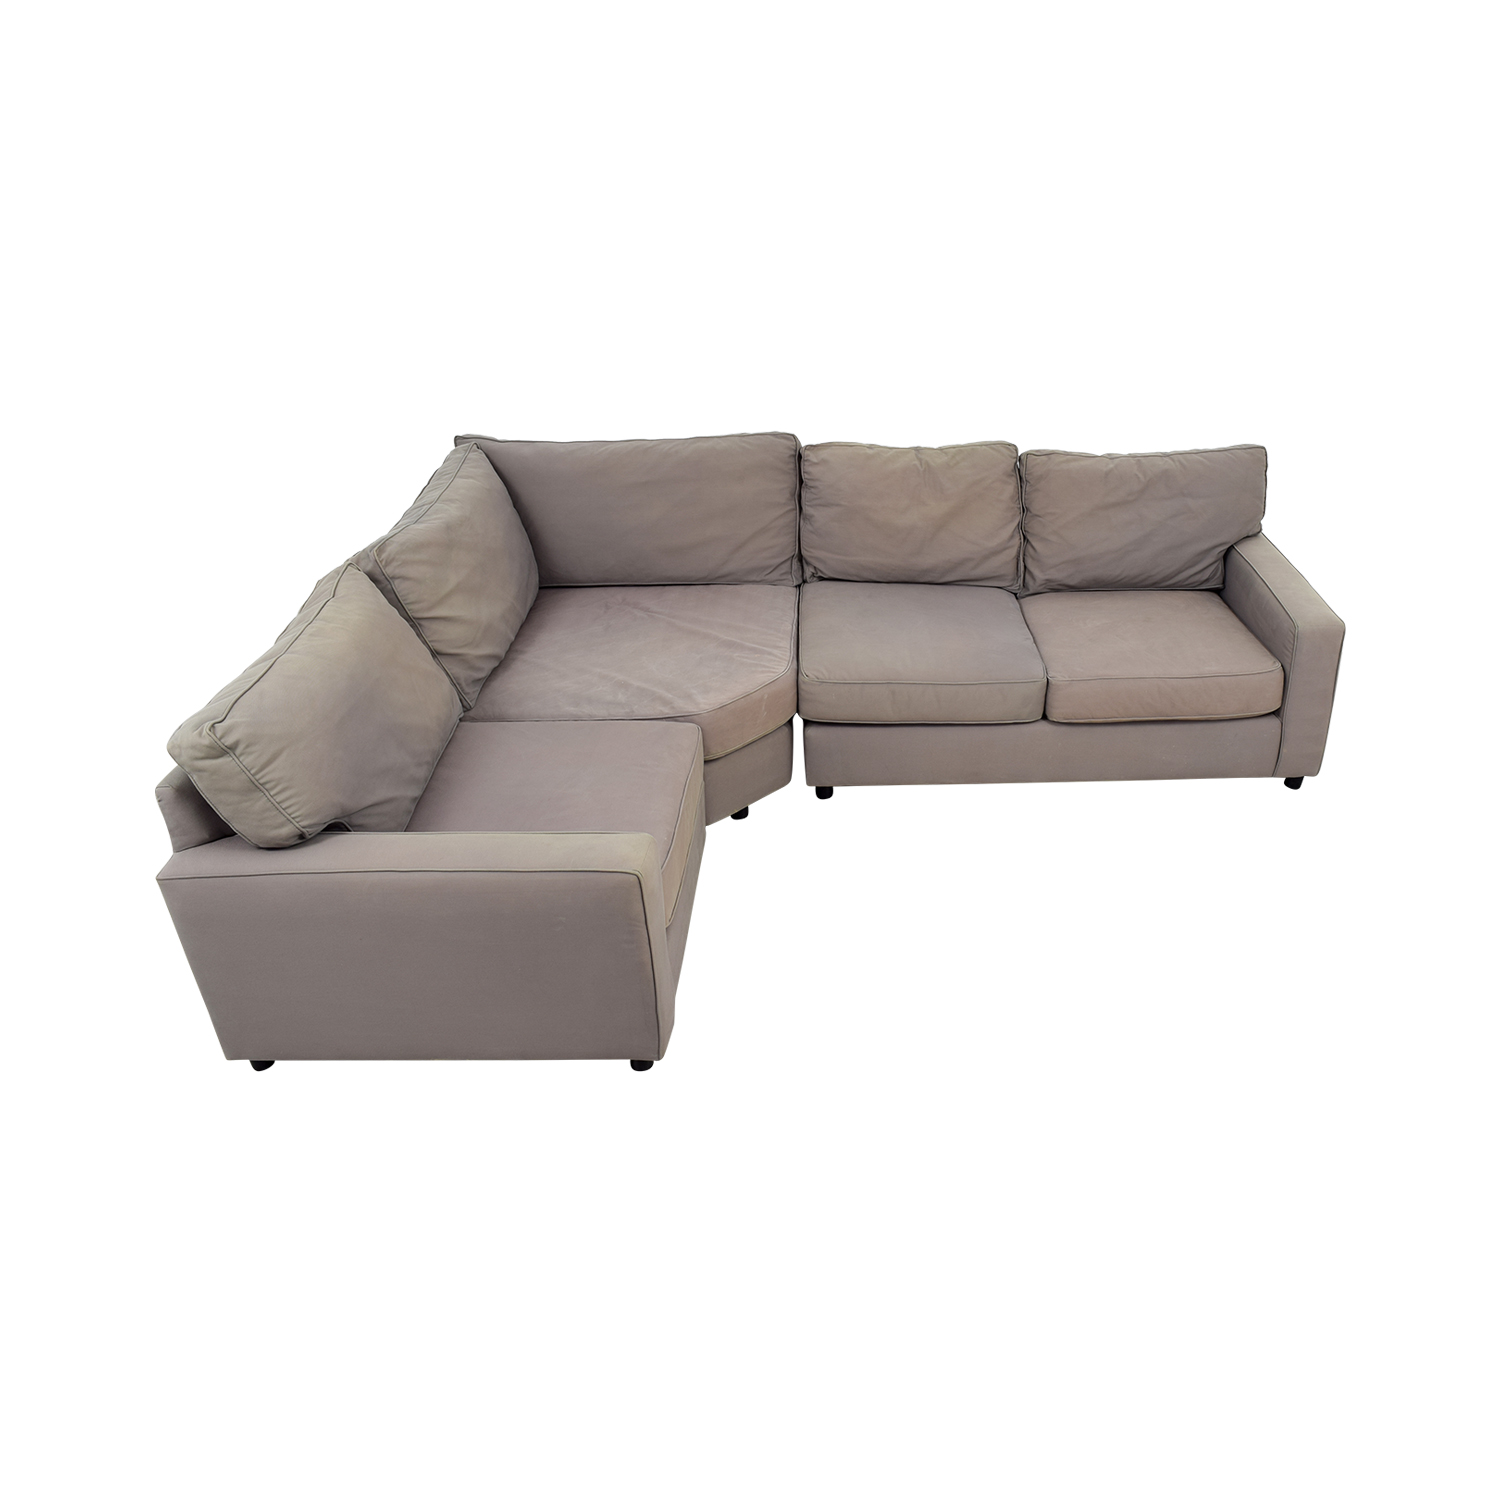 gallery cheap white pictures zen info sofas diamond sofa of vaszoly awesome fresh sectional